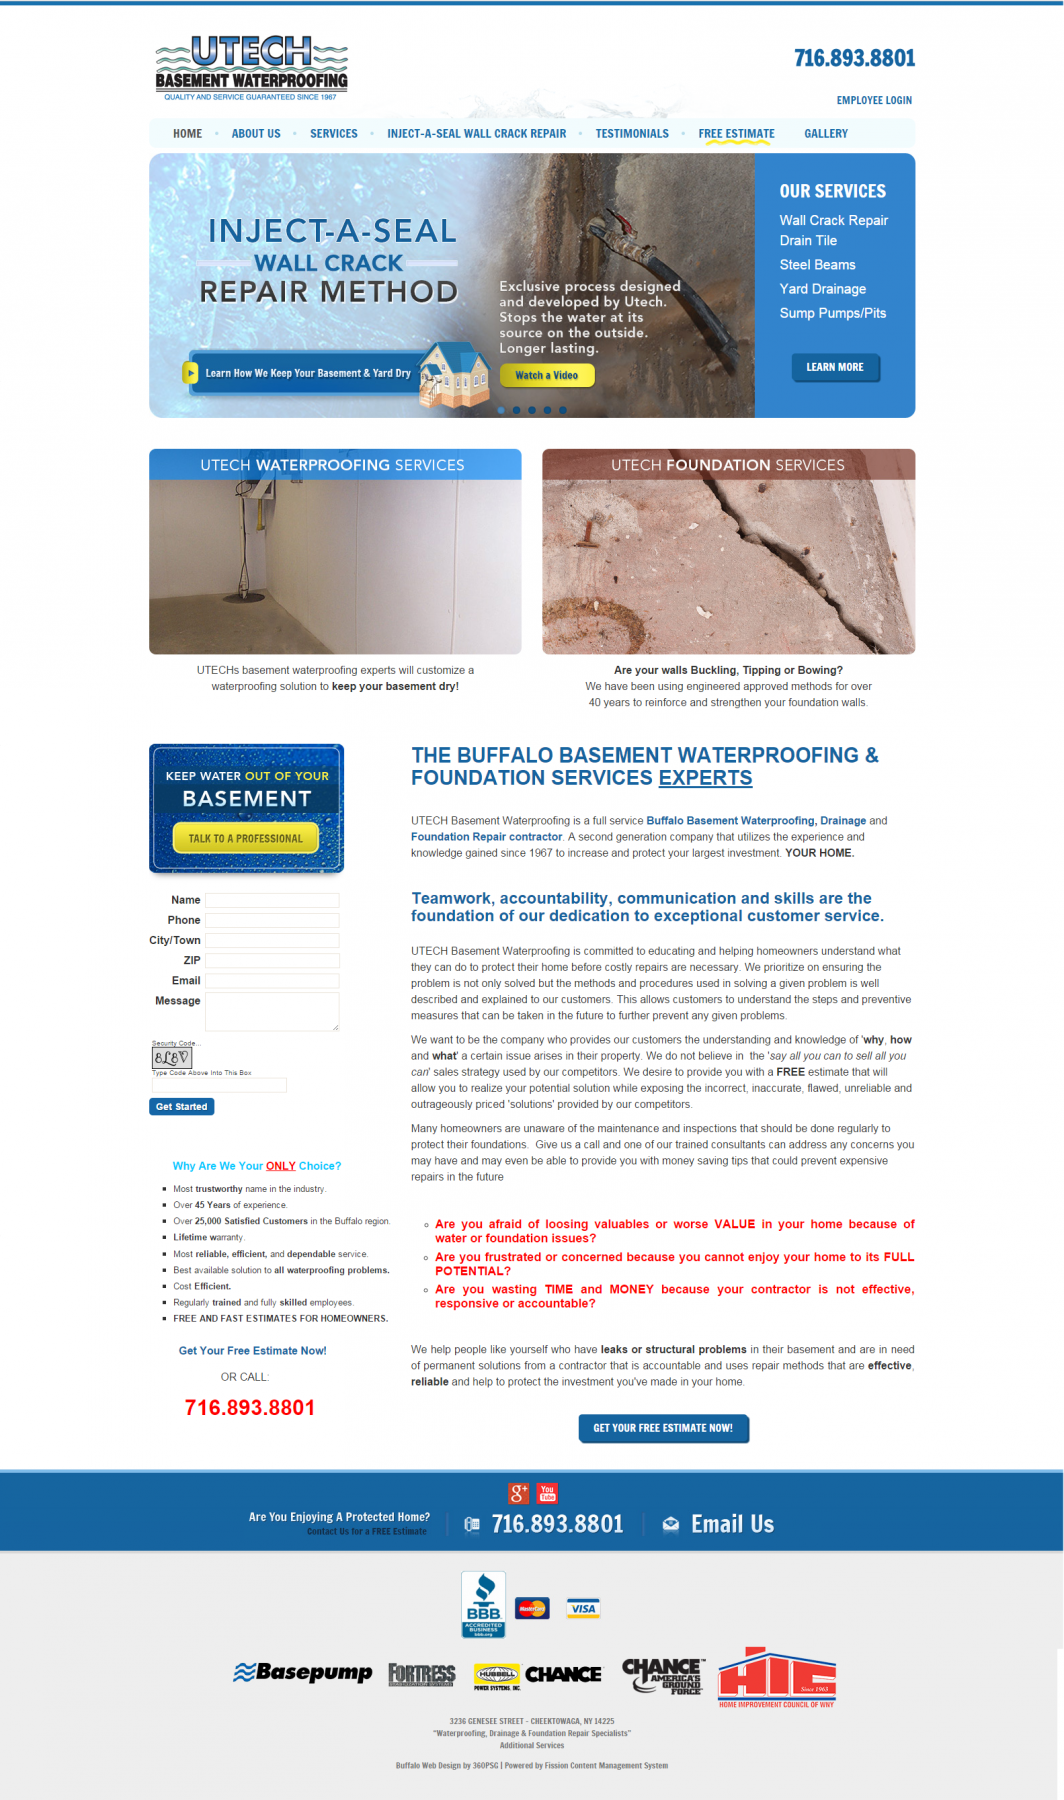 Portfolio Pieces - Utech basement waterproofing